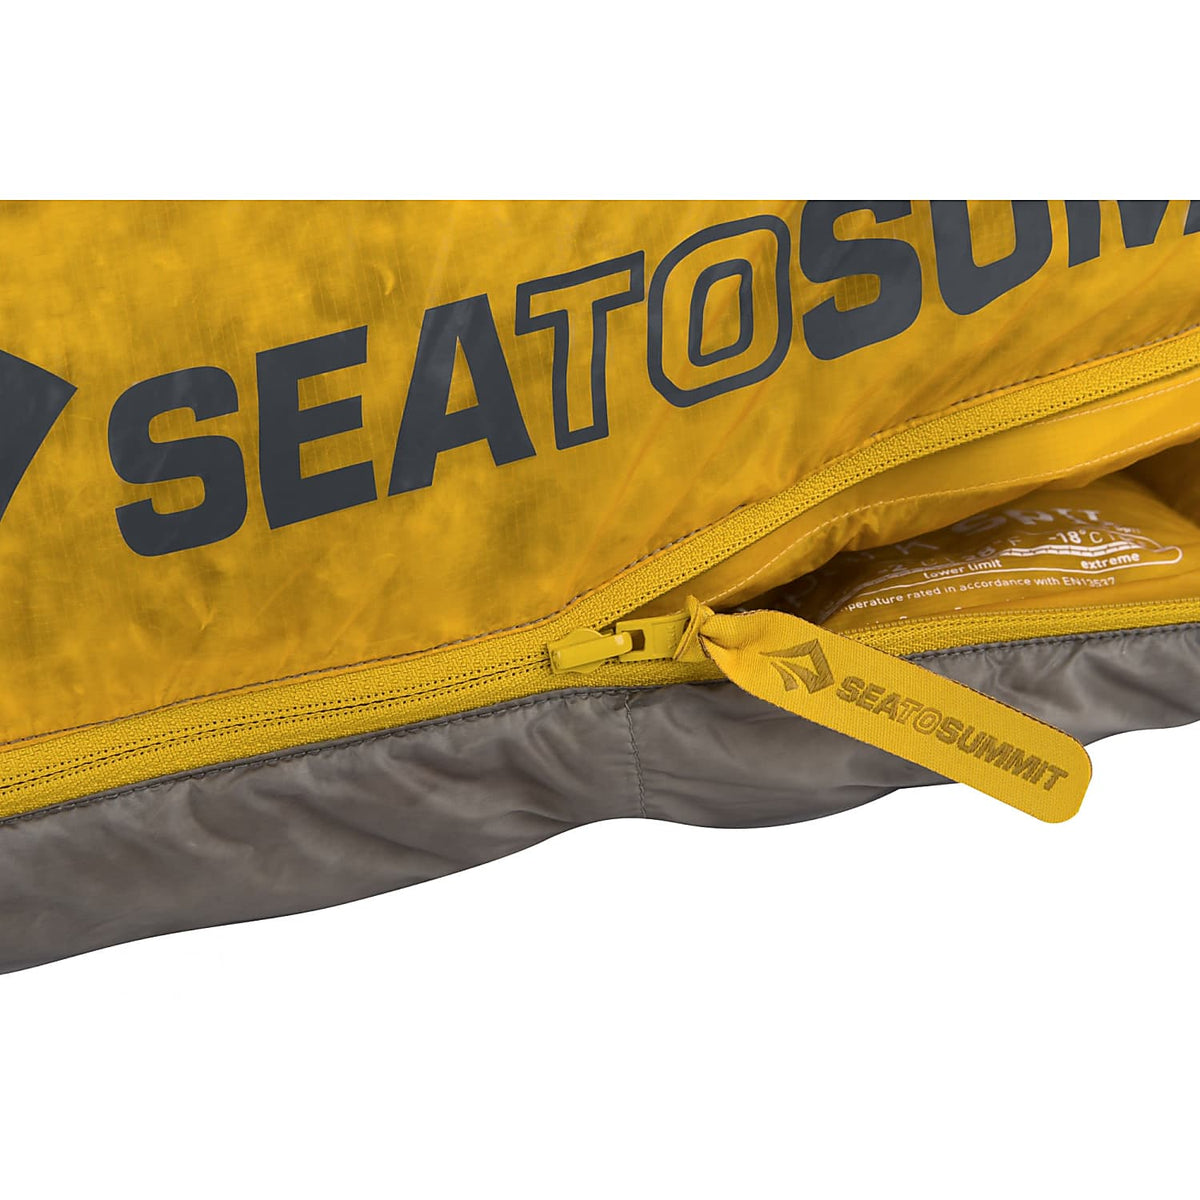 Sea to Summit Spark II sleeping bag showing zip and logo design detail